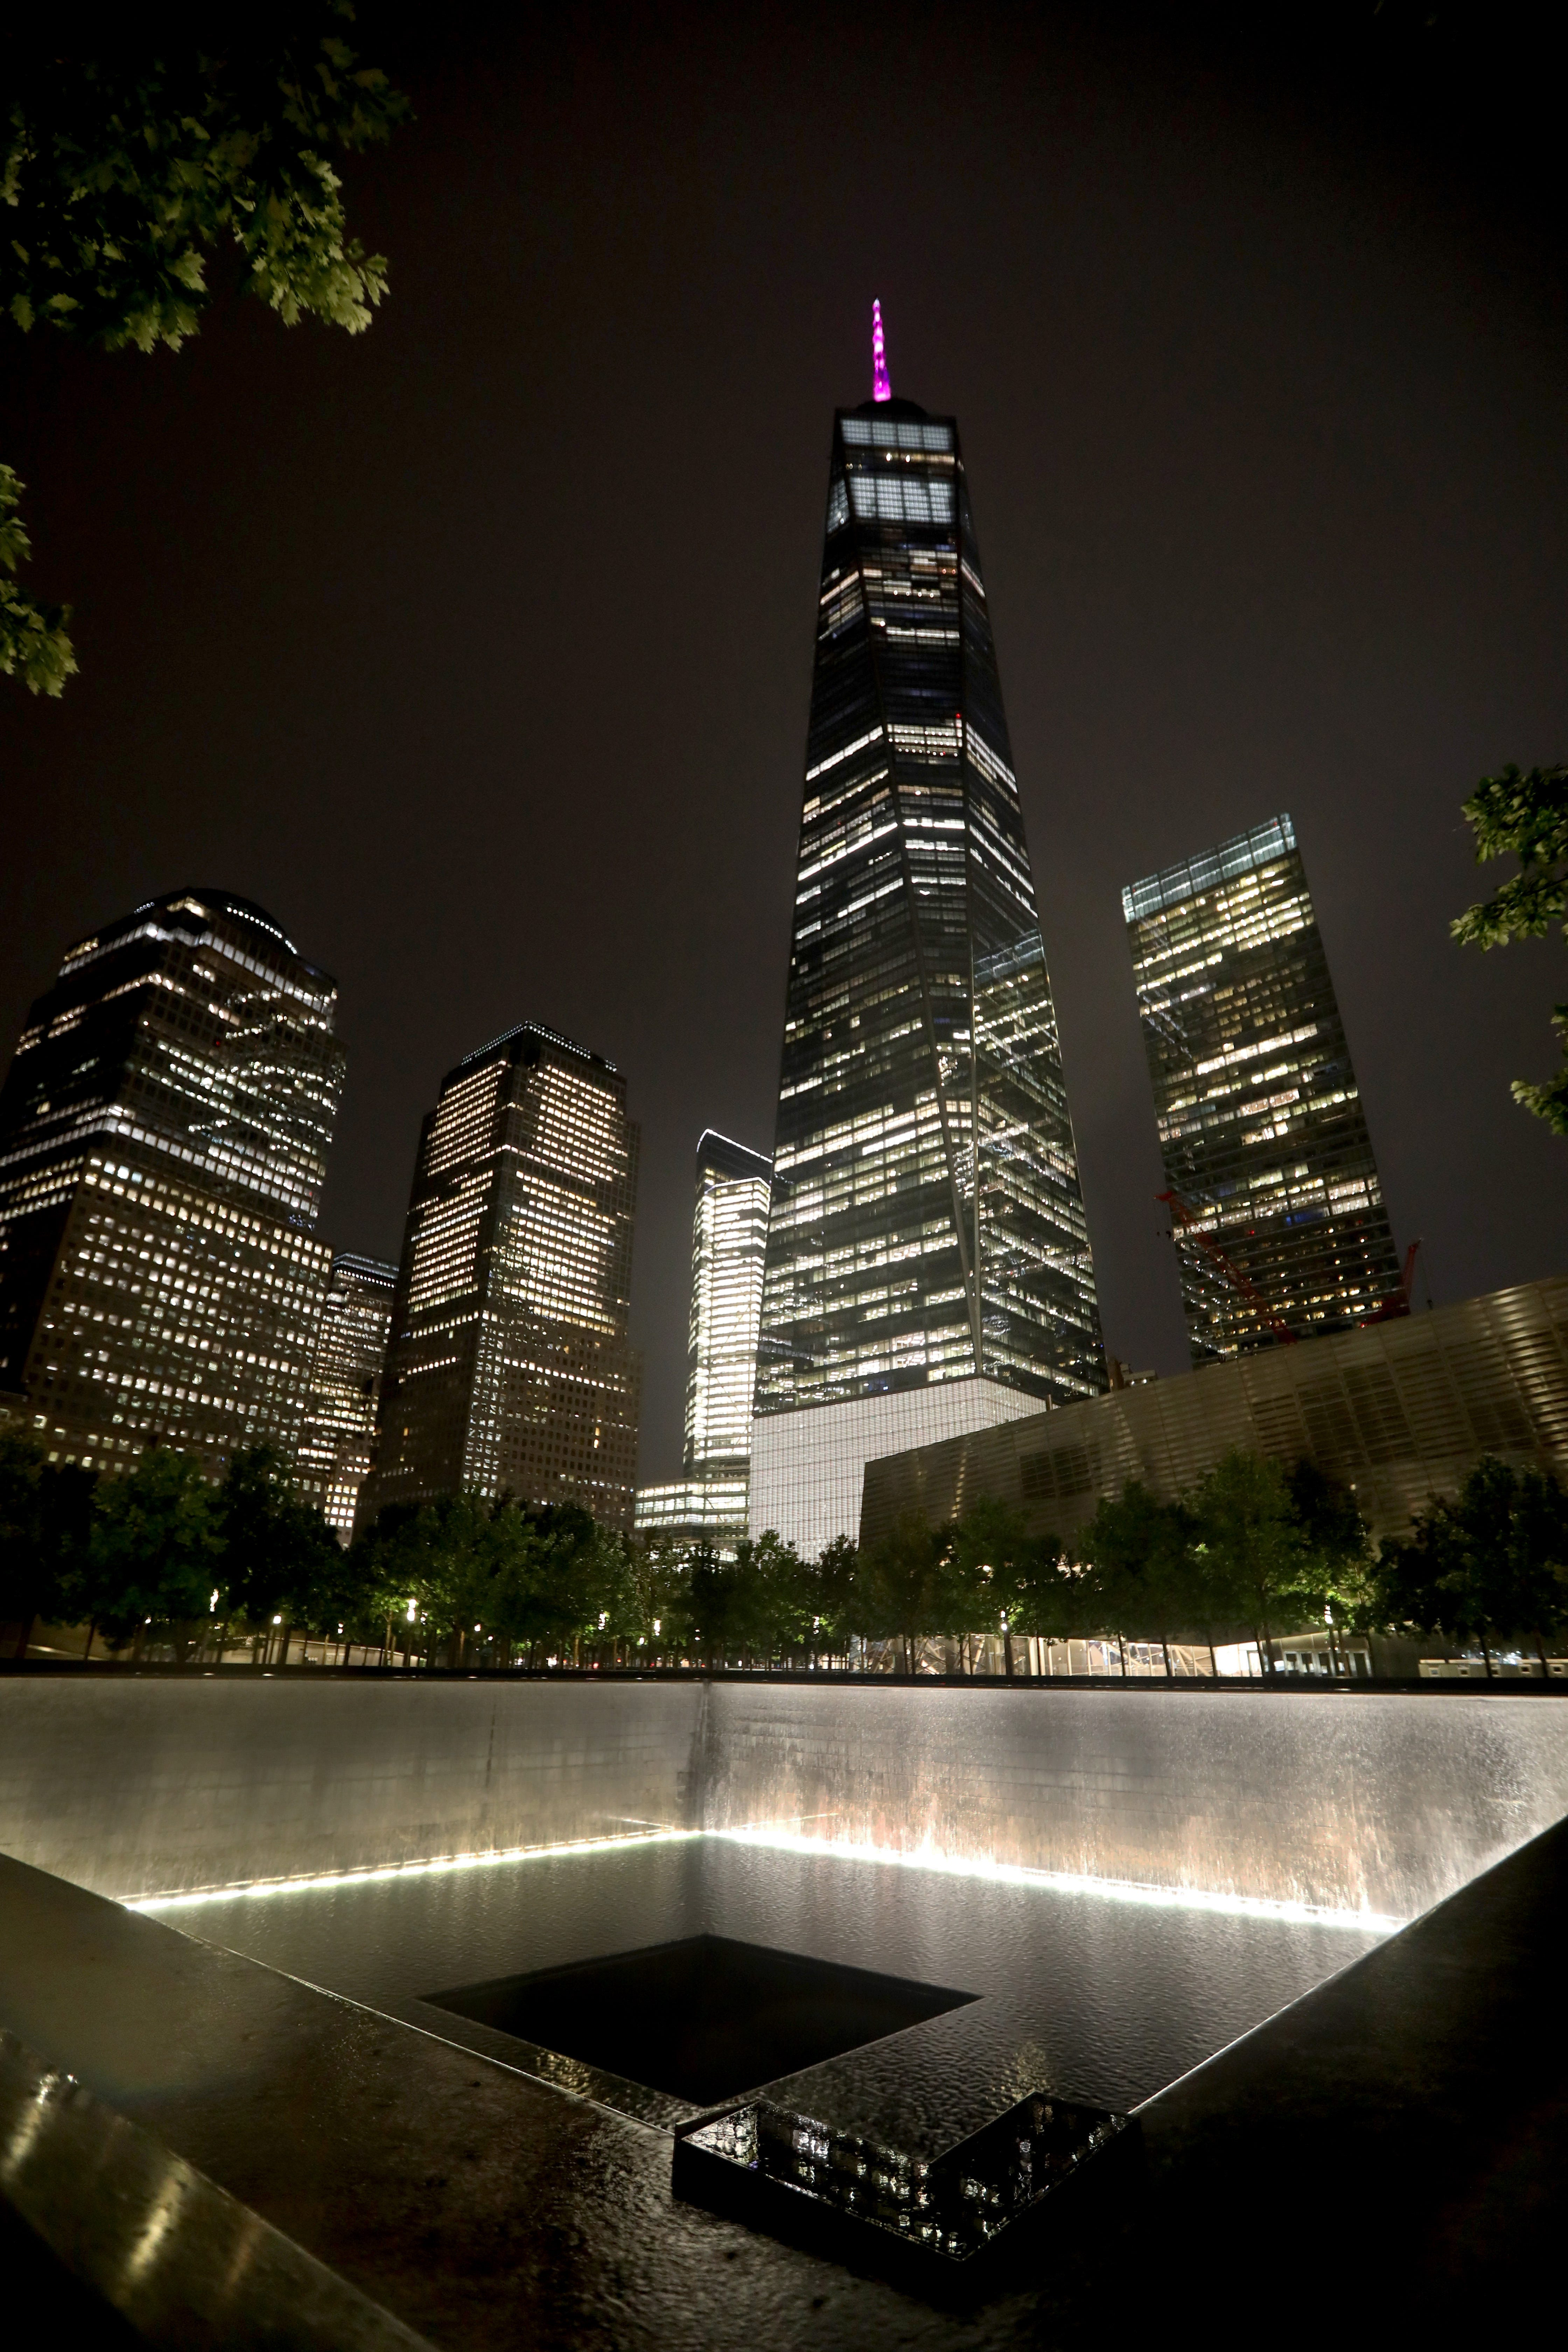 The 9/11 Memorial and One World Trade Center in Manhattan, photographed at night Aug. 10, 2021. The Memorial has not been open to the public at night since before the COVID-19 pandemic, and will only be open at night on Sept. 11th, to commemorate the 20th anniversary of the 9/11 attacks.